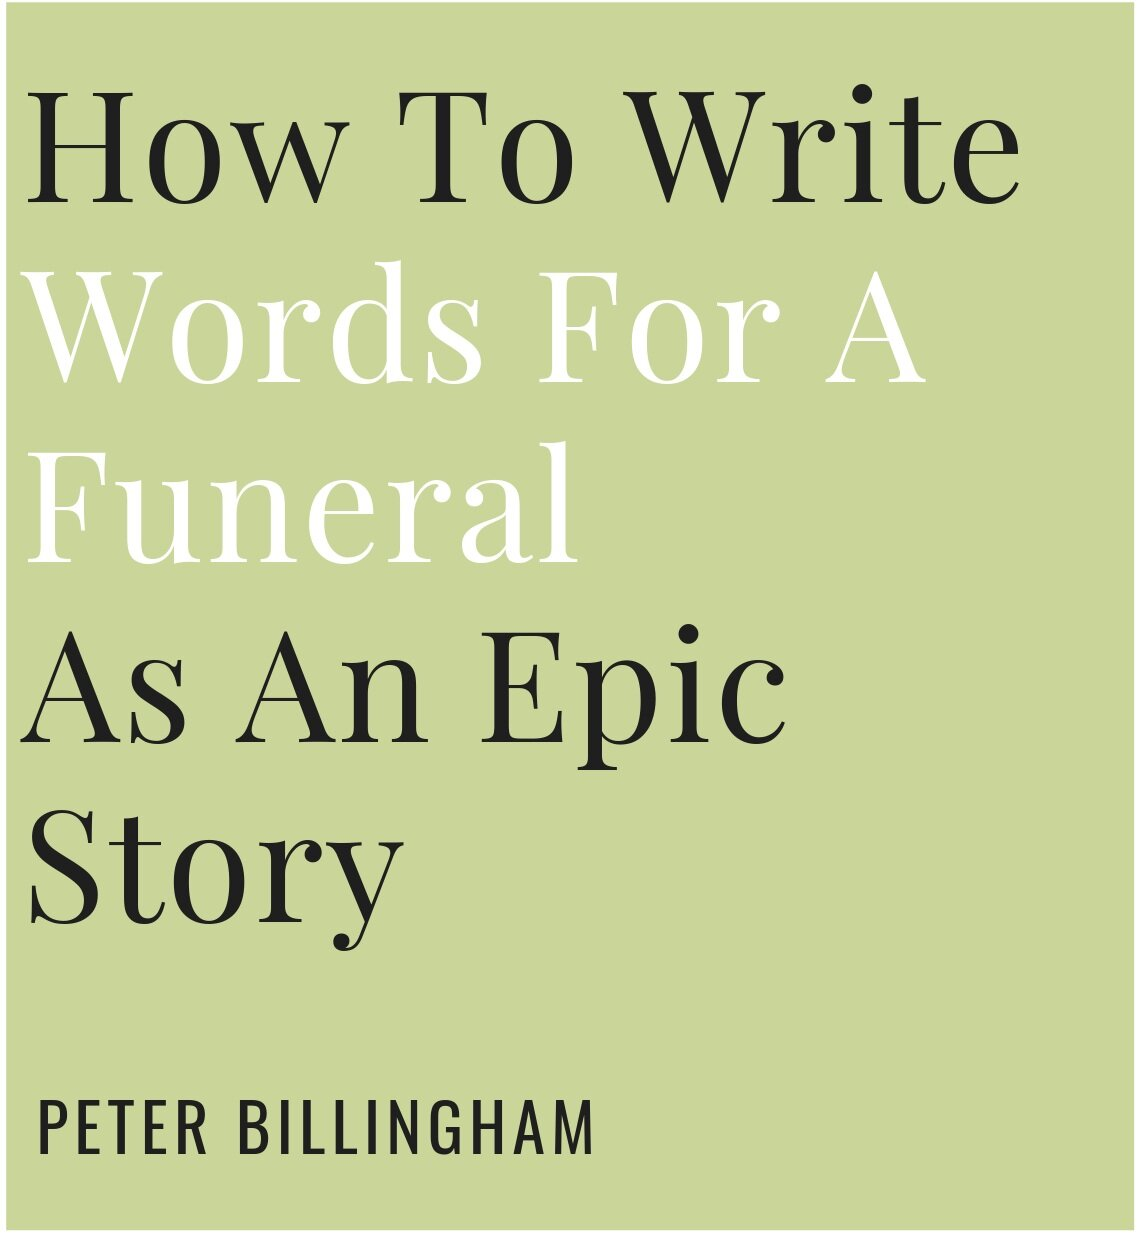 Peter Billingham Funeral Celebrant - How To Write Words For A Funeral As An Epic Story